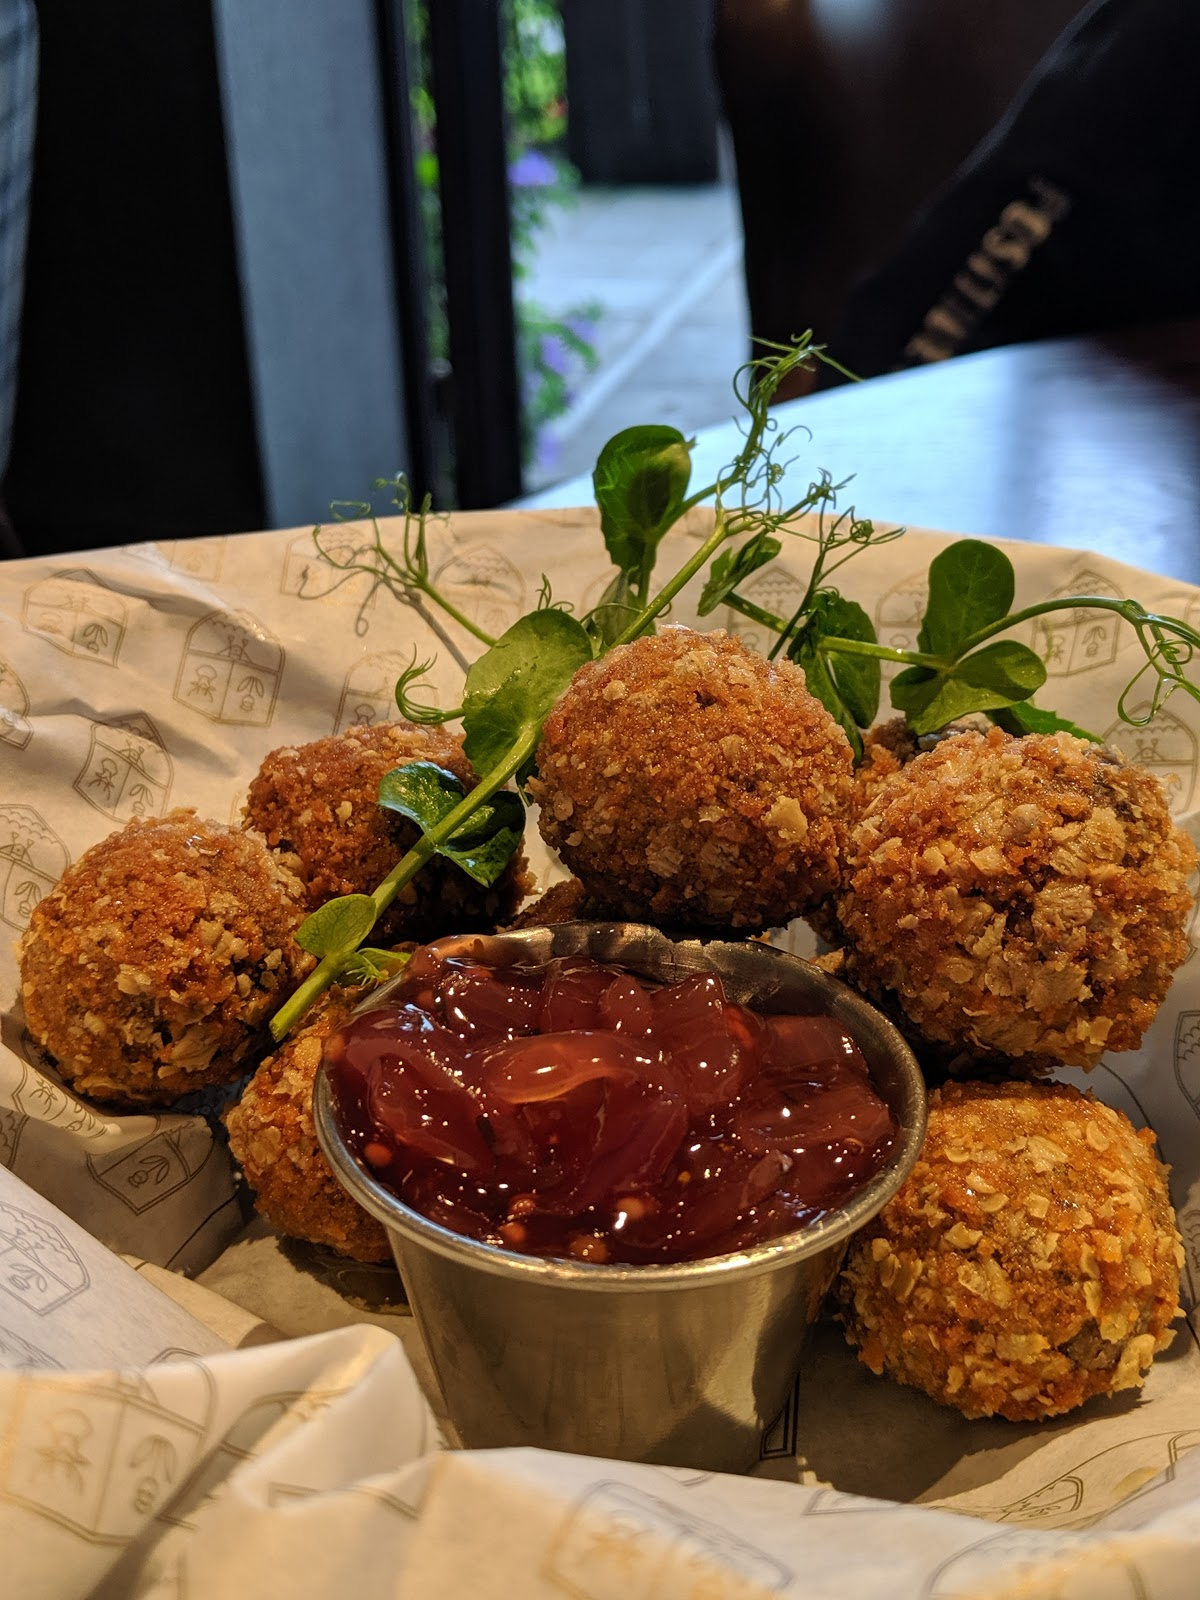 A Short Break at Cameron Lodges, Loch Lomond - cameron lodges clubhouse - haggis bon bons